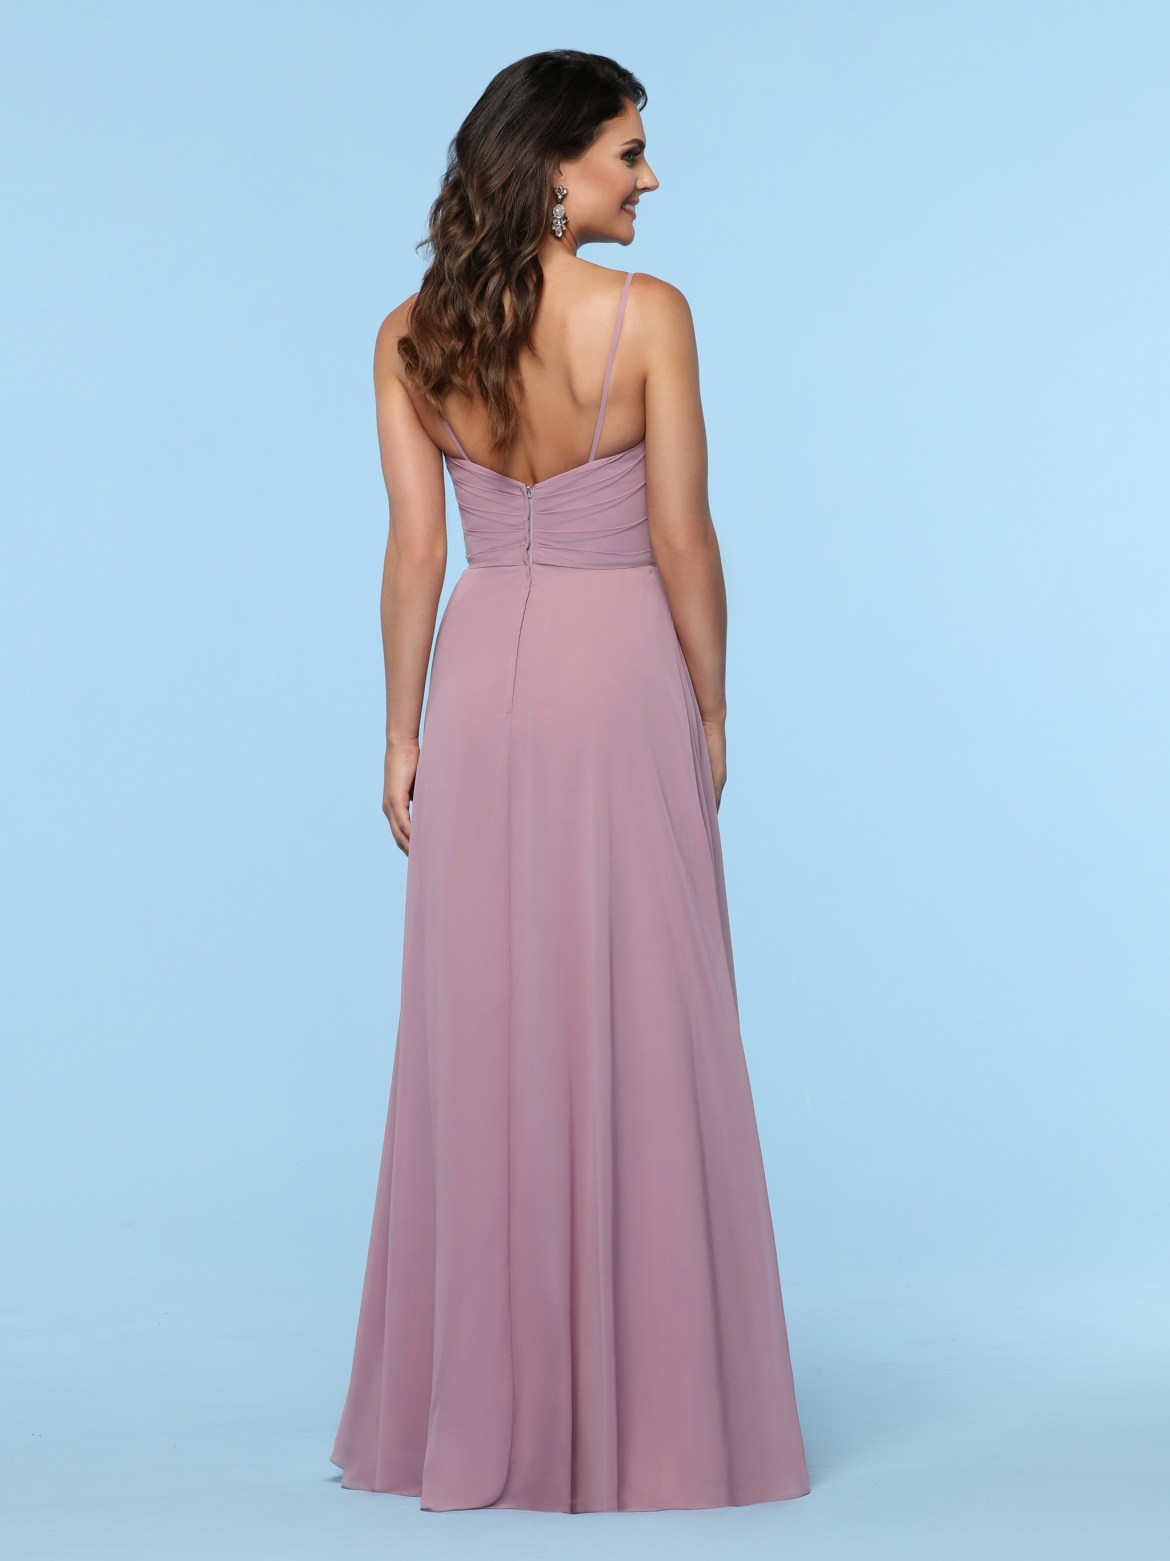 d076c6b9d55 New Bridesmaid Dress Trends 2019 Tiered Skirt Bridesmaid Dresses ...